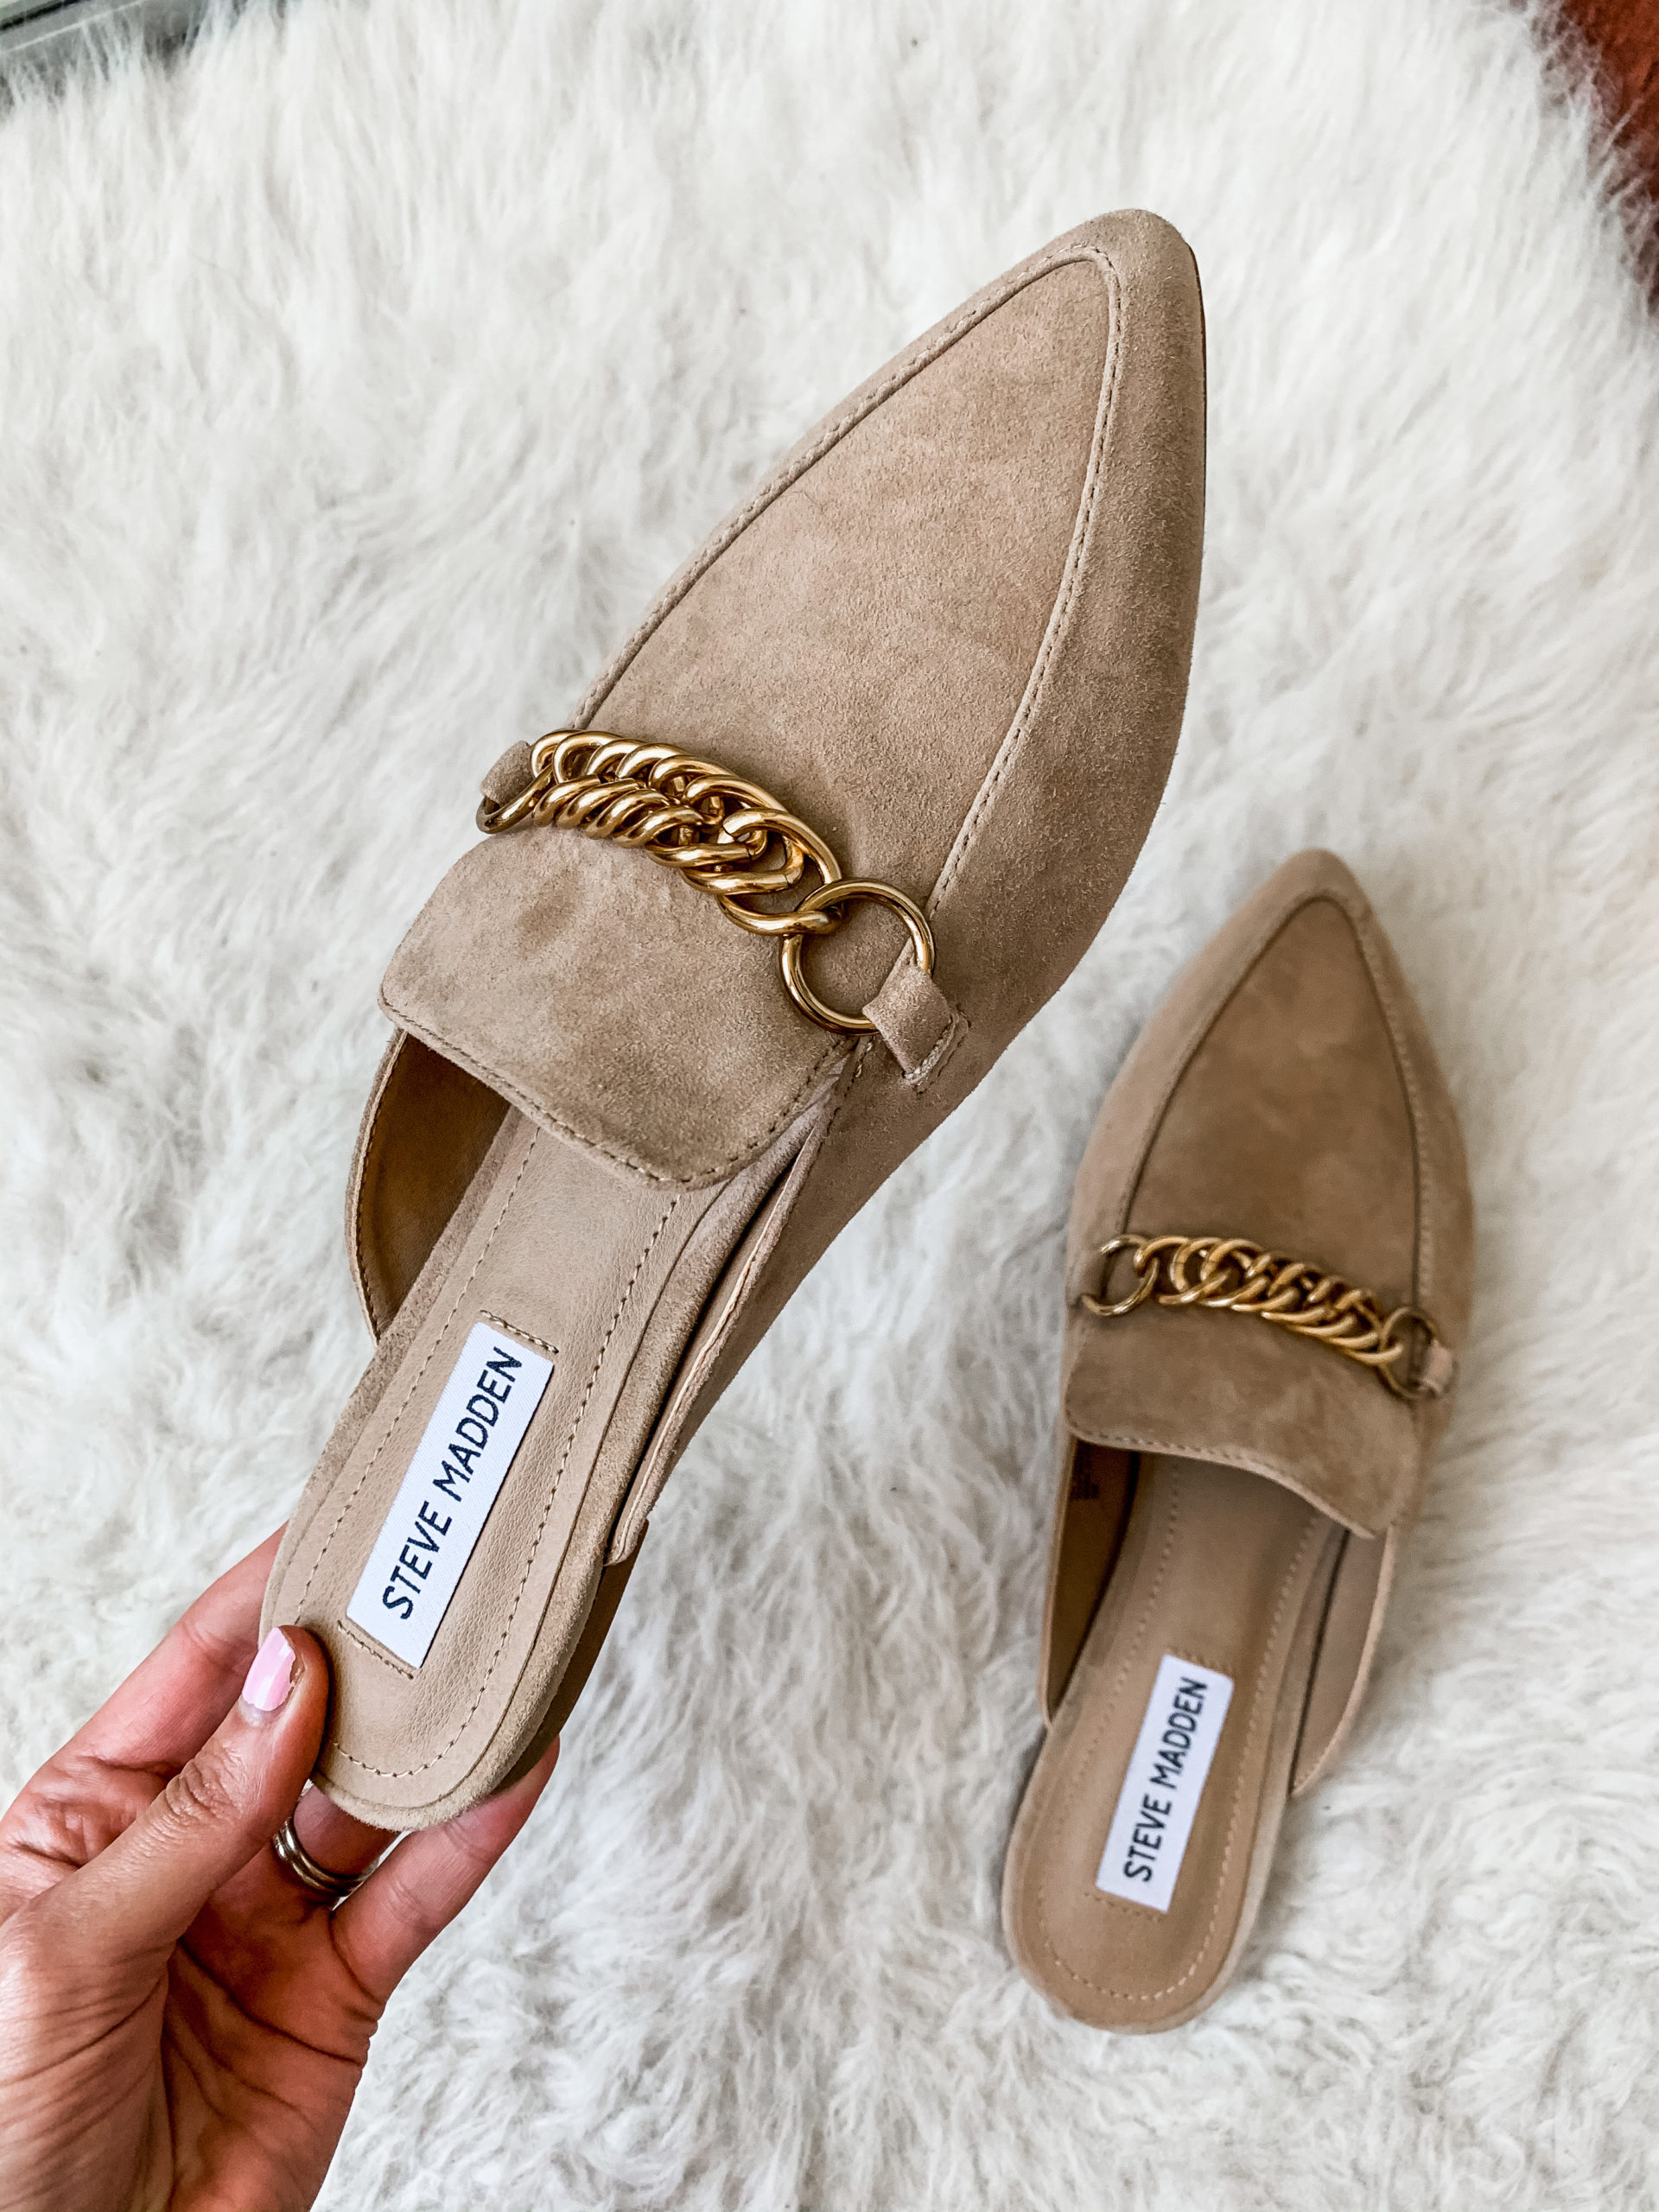 Steve Madden mules - NORDSTROM ANNIVERSARY SALE - Try-on Haul with Hits AND MISSES on Coming Up Roses